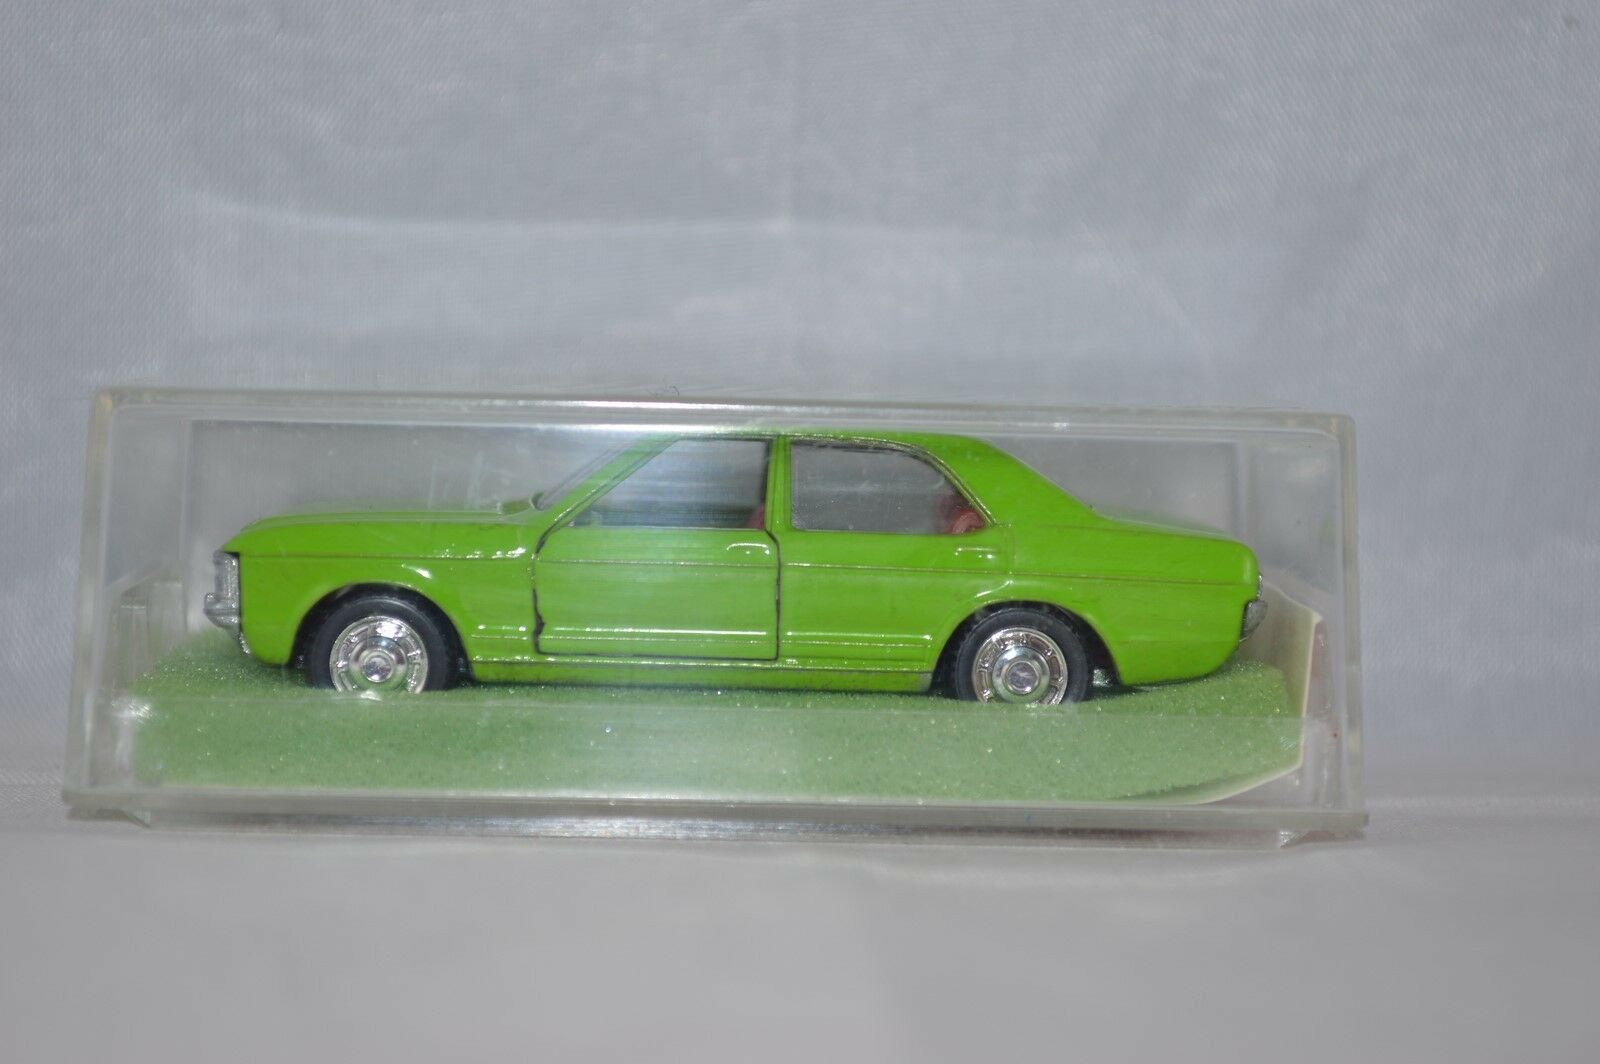 Schuco Schuco Schuco 301 858 Ford Consul     Mint in Box. e3e75e